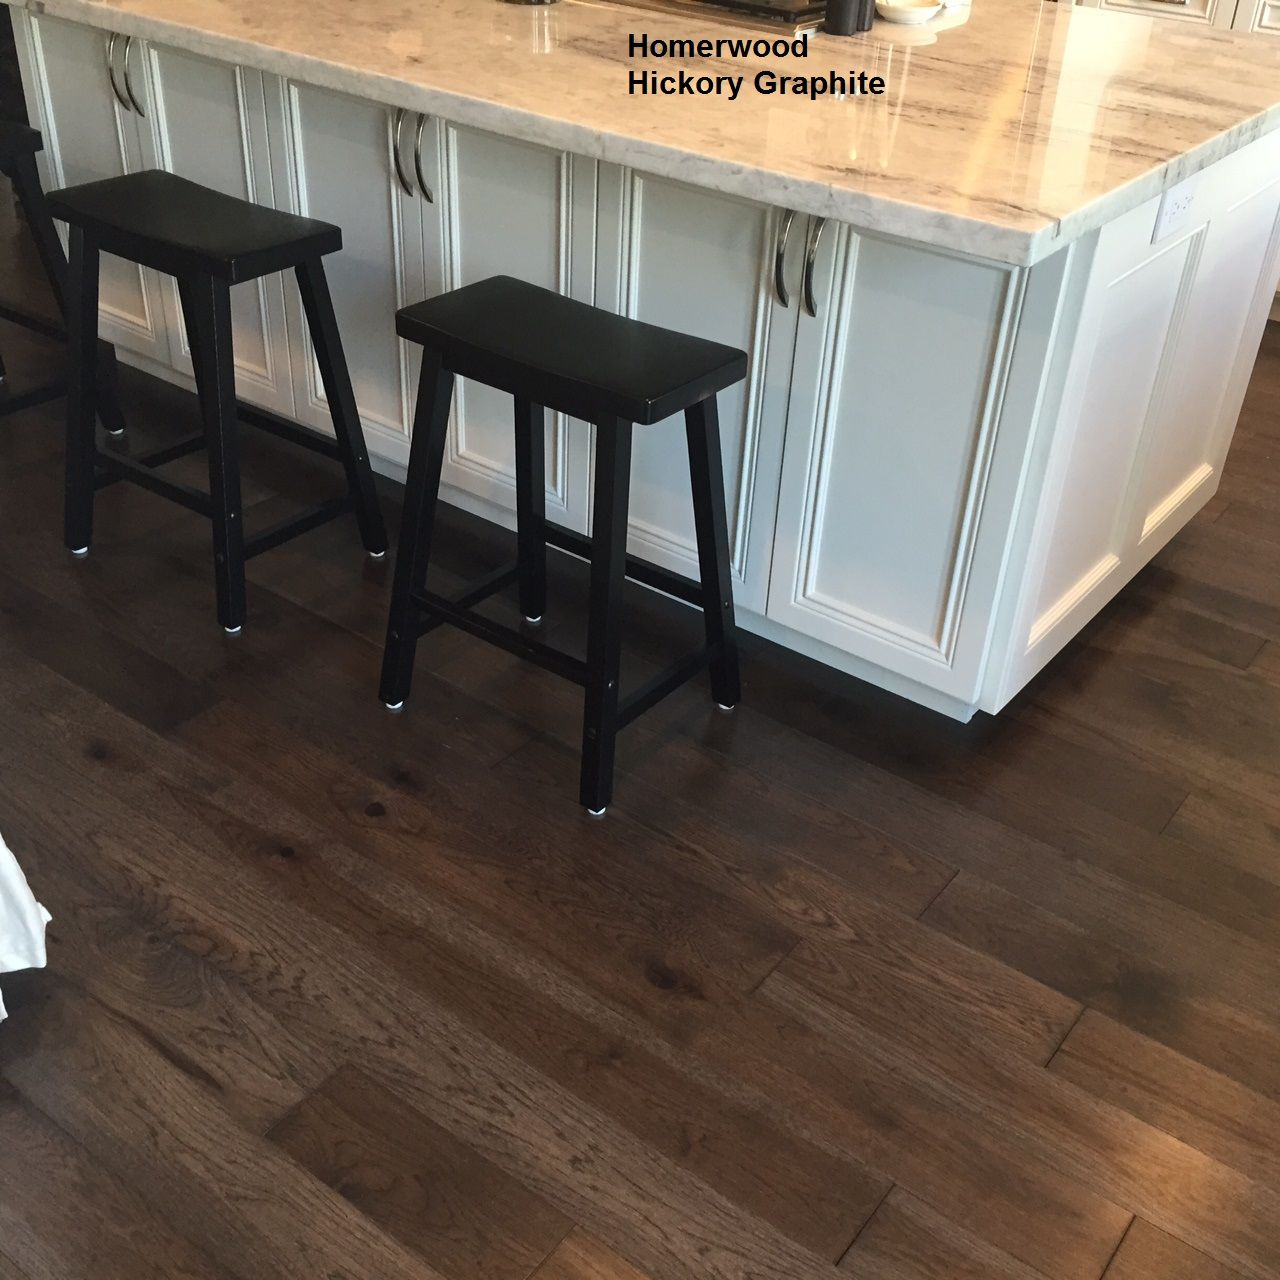 Homerwood hickory graphite sold at lock key furnishings come homerwood hickory graphite sold and installed by precision flooring tyukafo